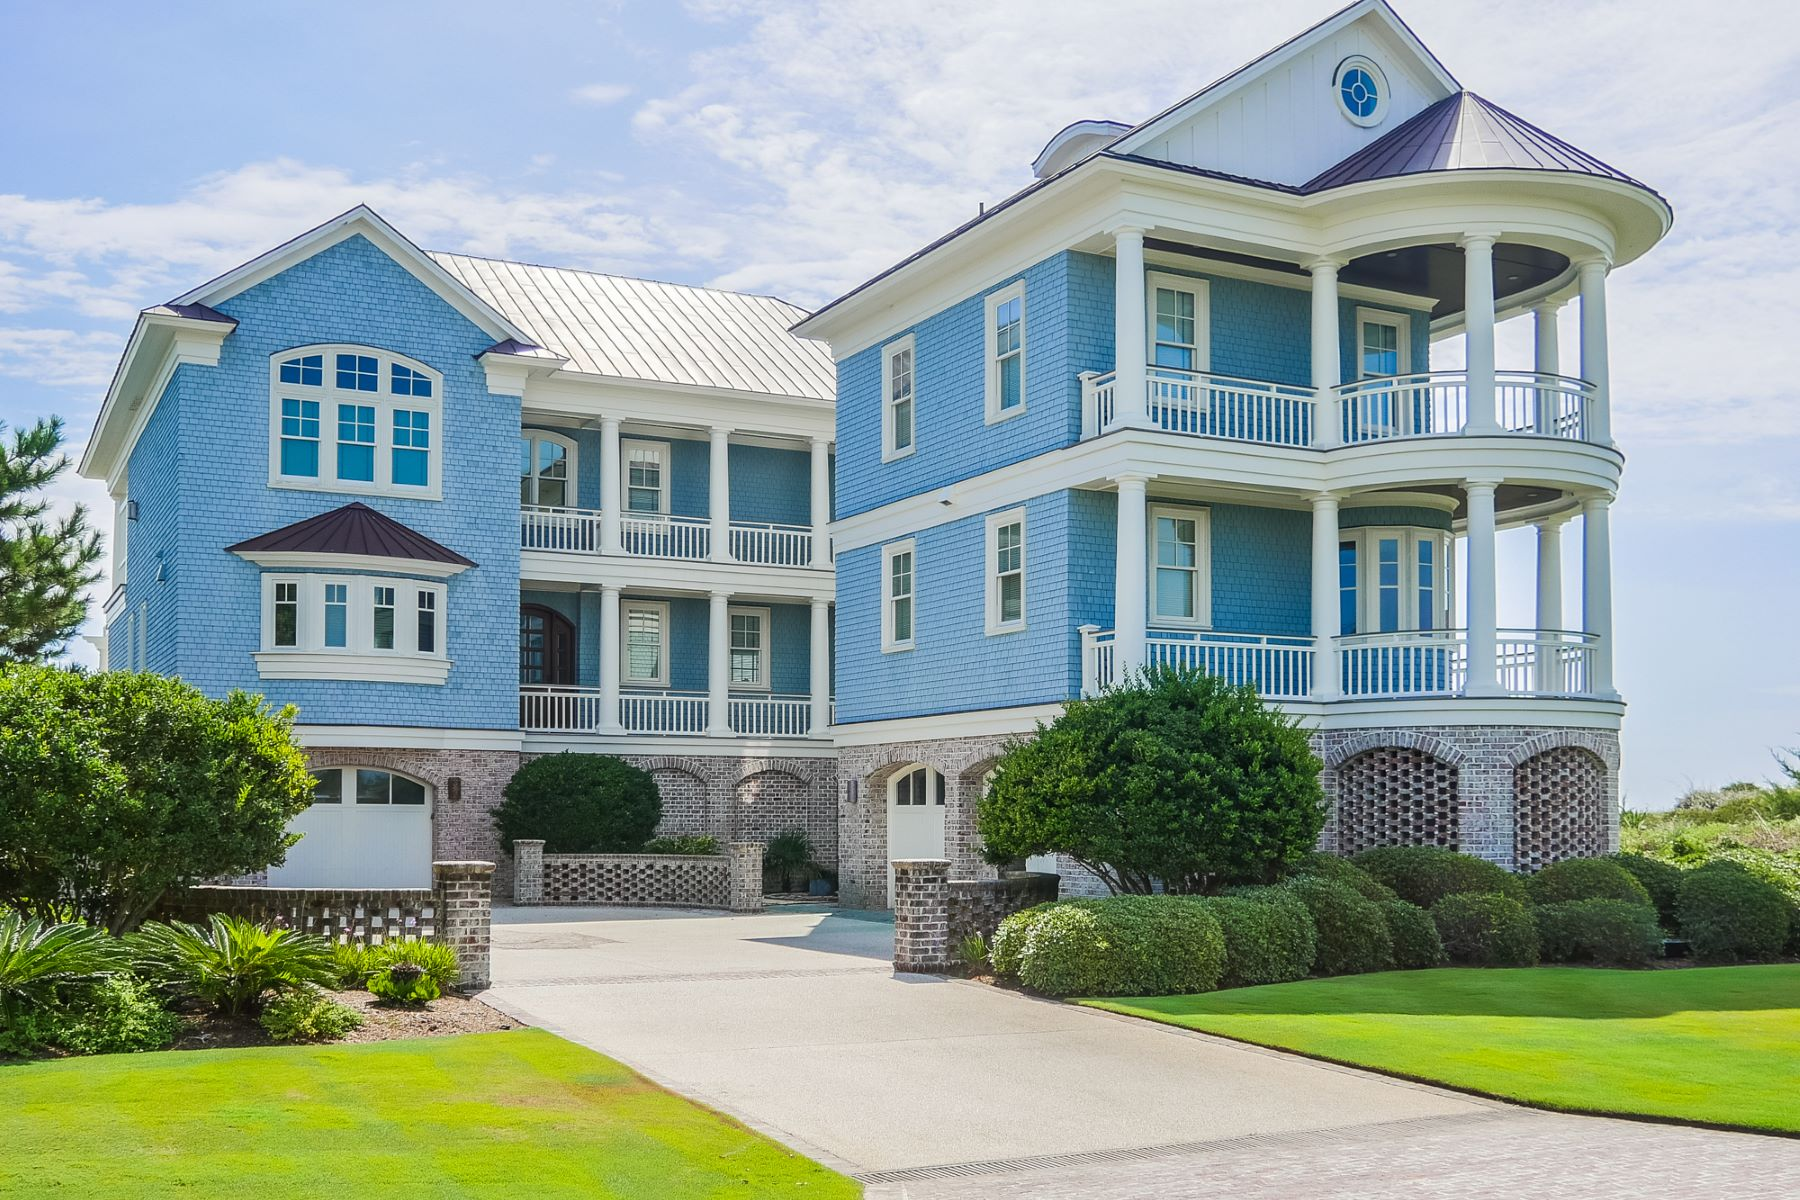 Single Family Home for Sale at Figure 8 Island Oceanfront Estate 520 Beach Road N Wilmington, North Carolina 28411 United States